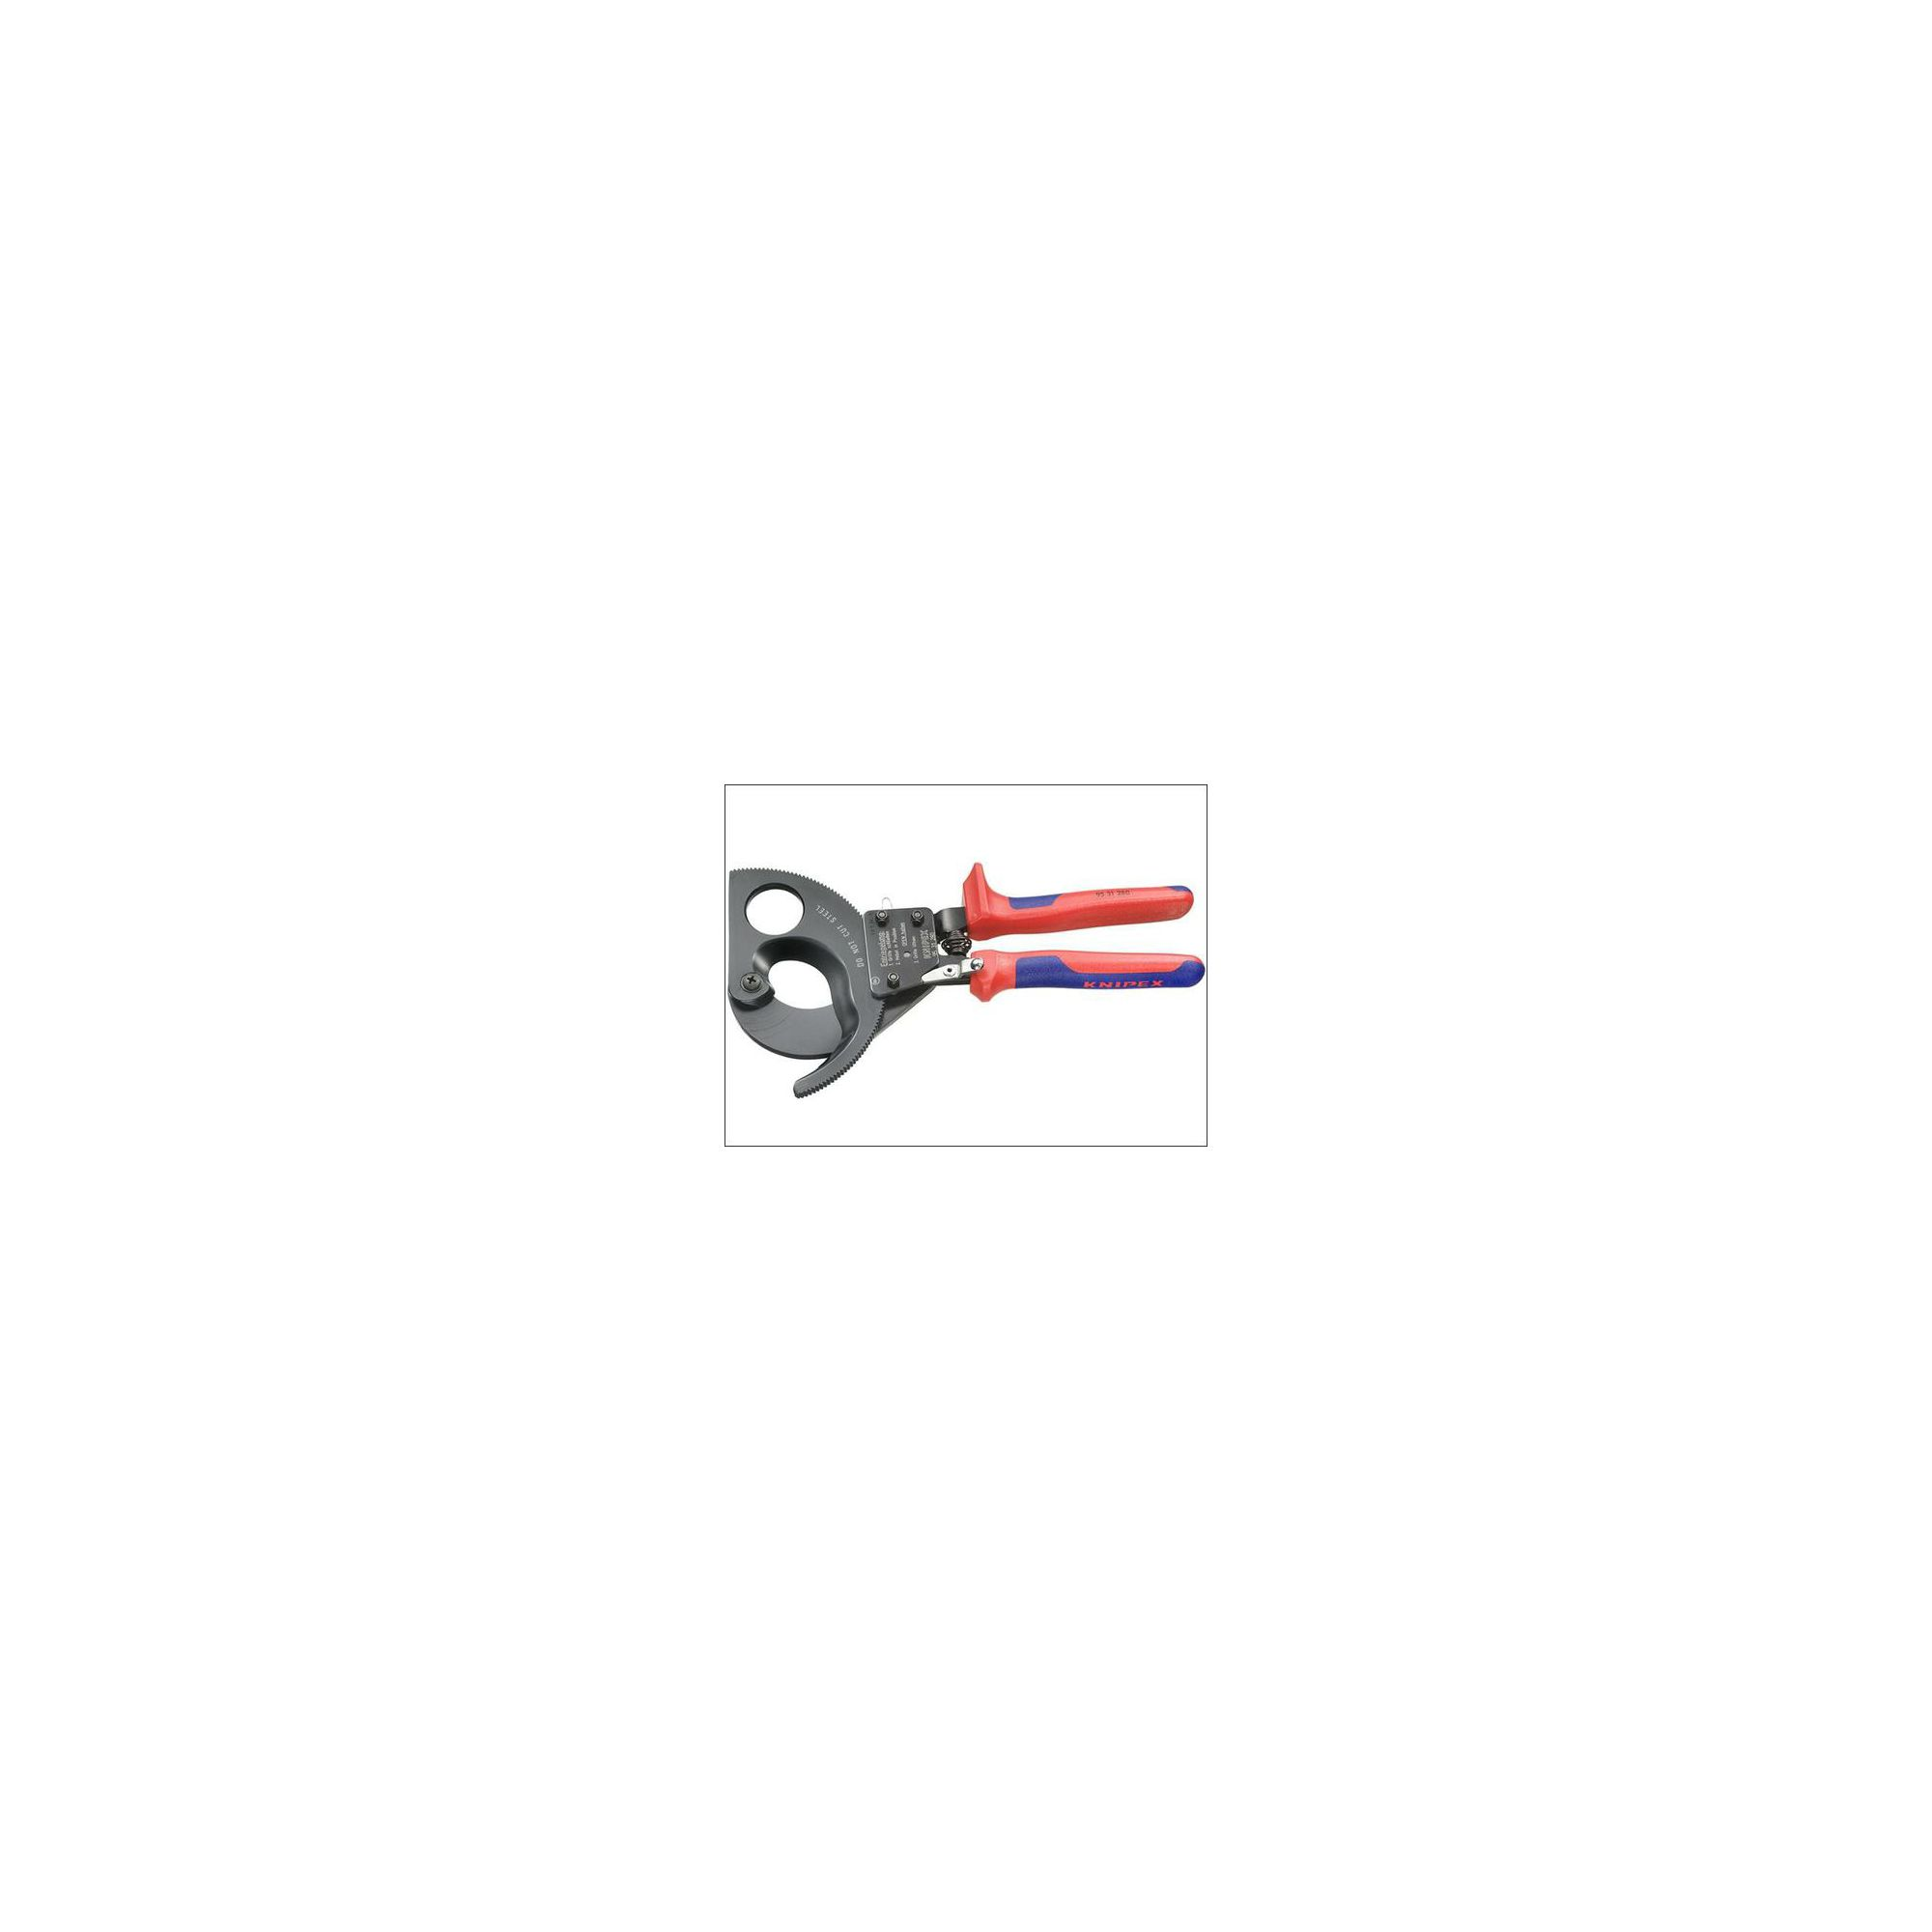 Knipex 9531280 Cable Shears Ratchet at Tesco Direct